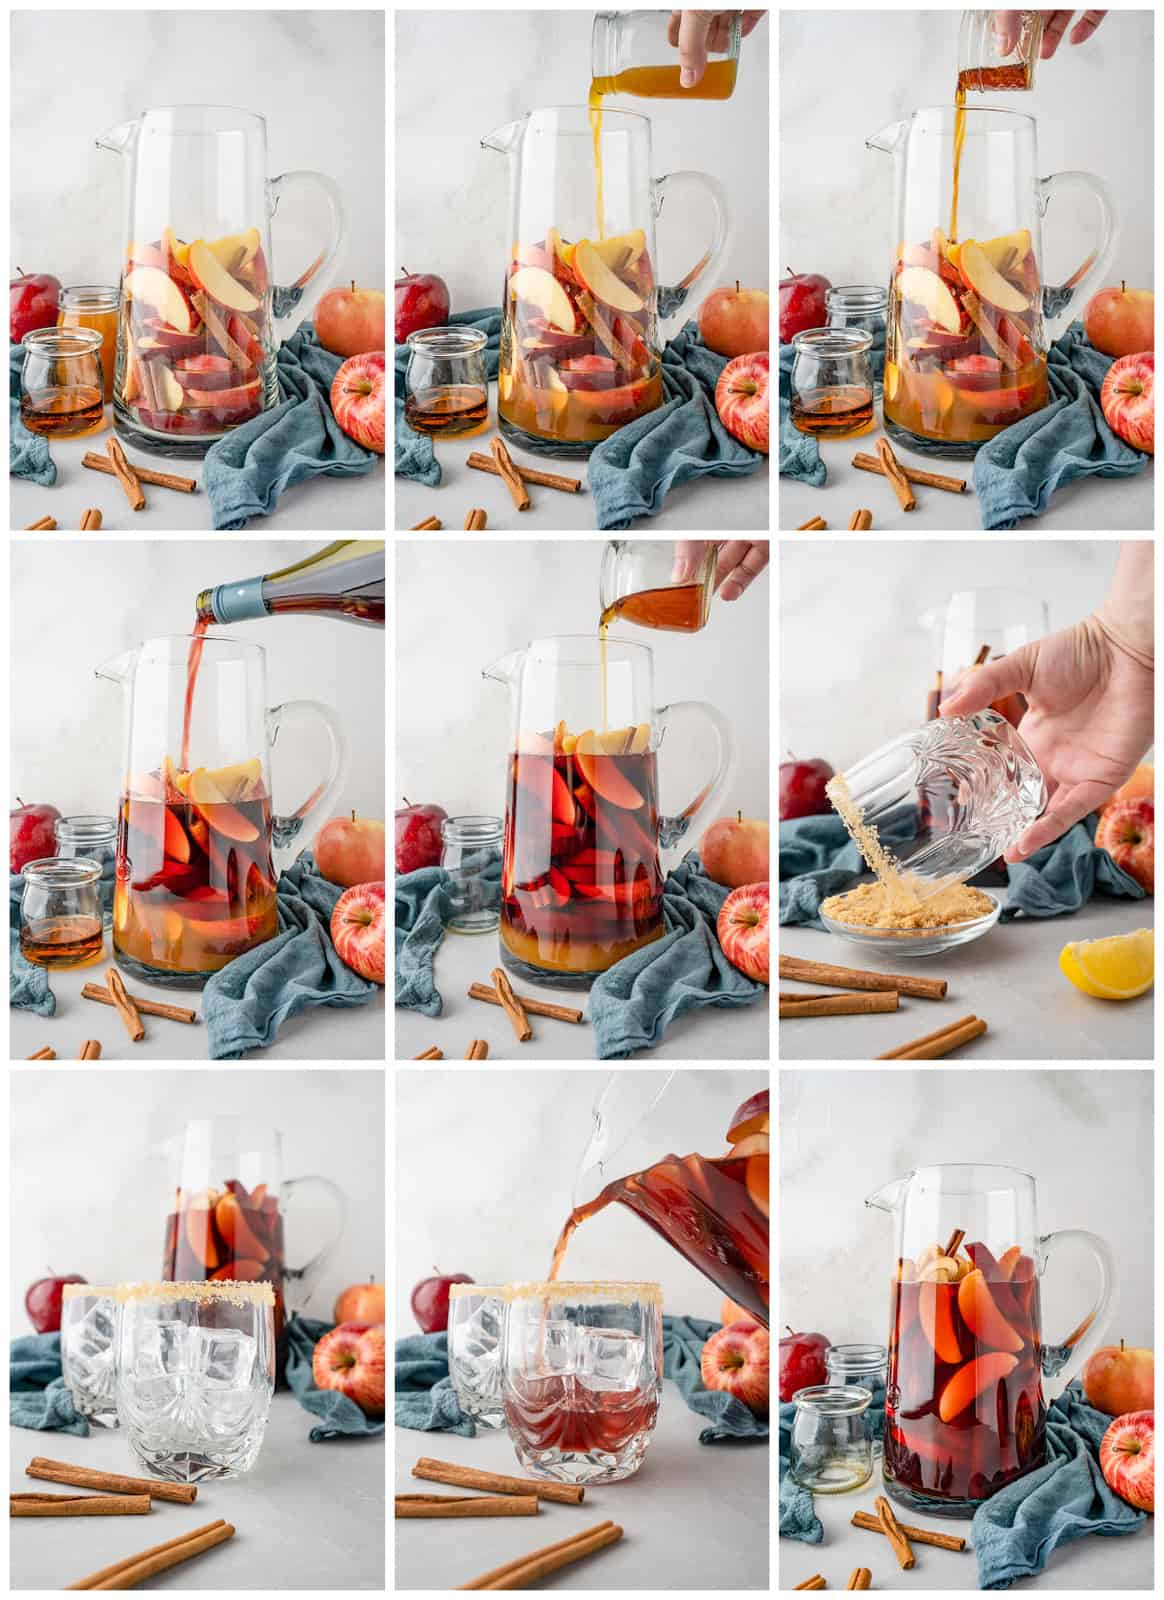 Step by step photo on how to make Apple Cider Sangria.